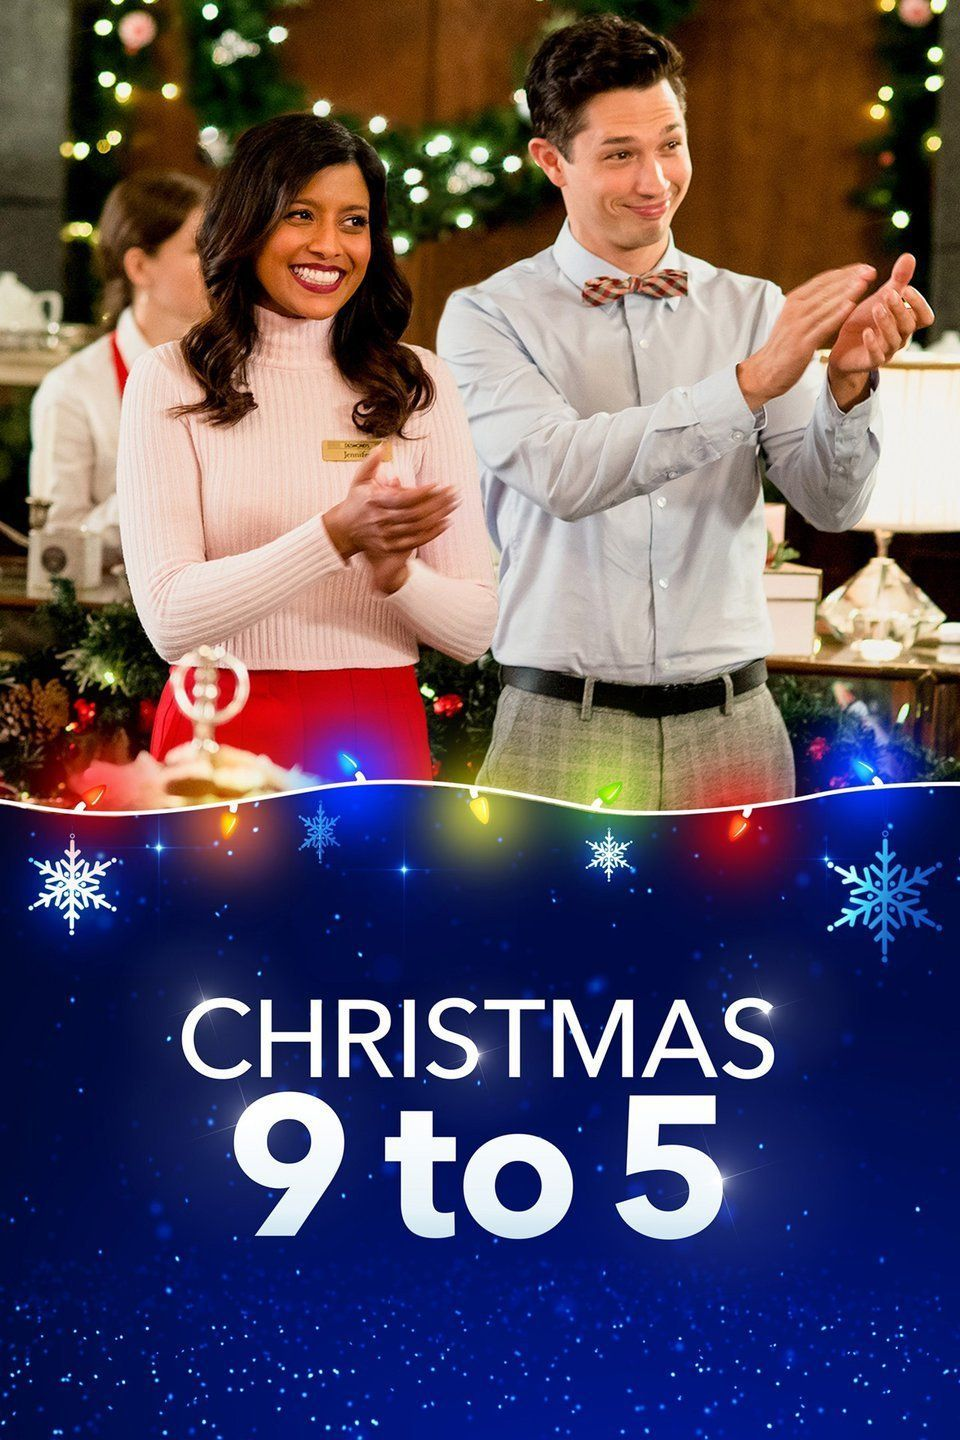 Watch Christmas Eve 2020 Online Free Jennifer (Tiya Sircar) is a tough crime beat reporter who gets the